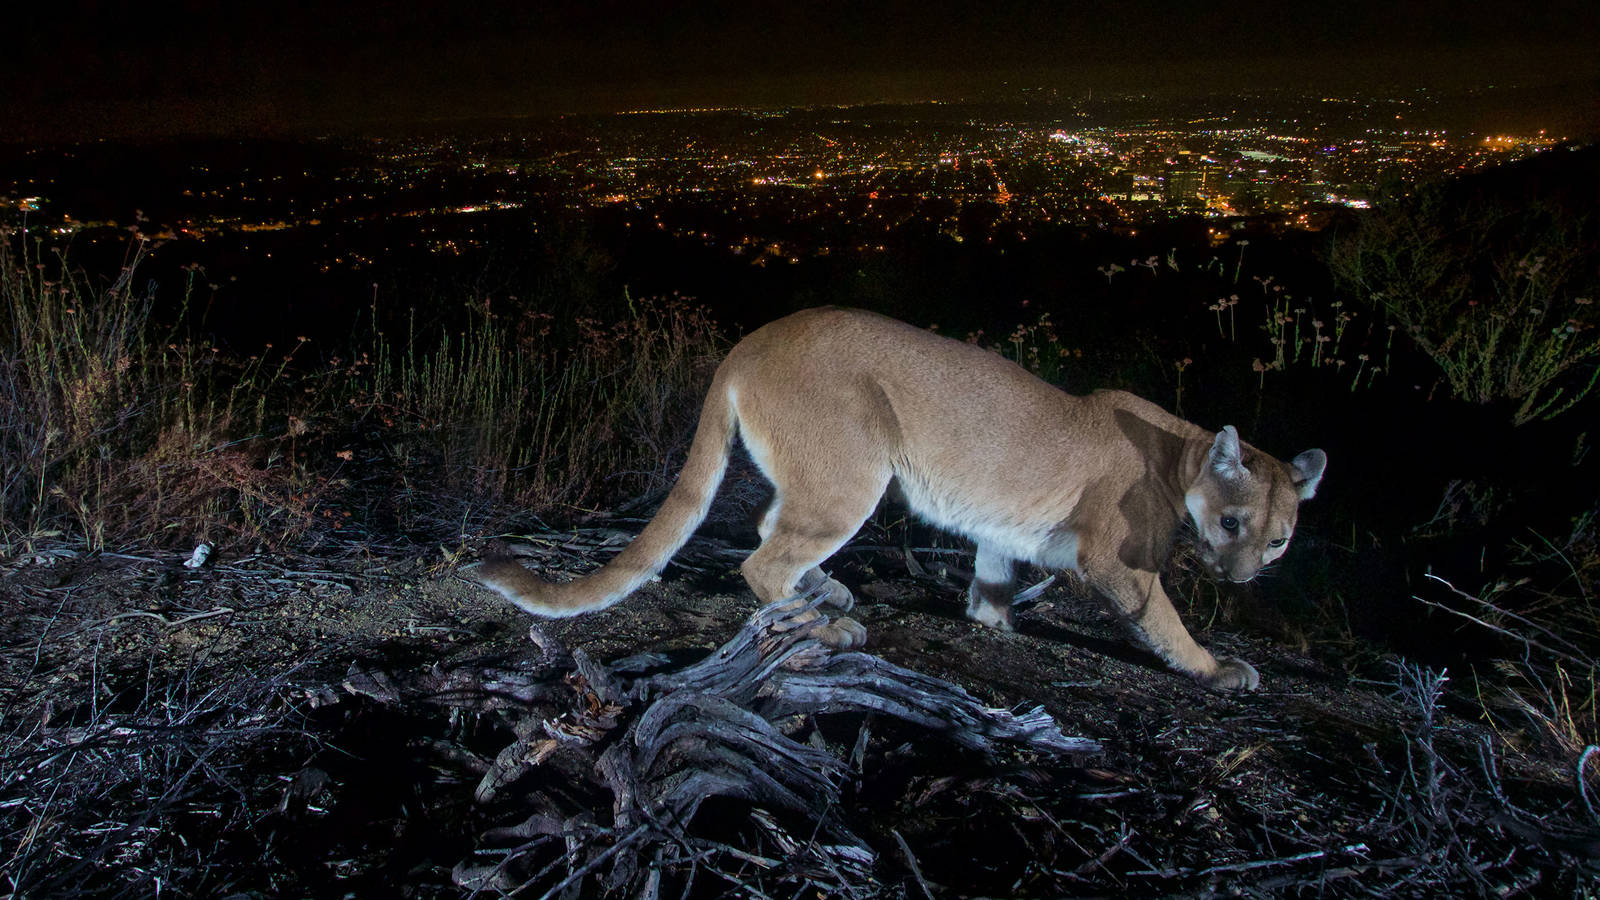 Light Pollution Research Shows Humans and Wildlife Can Coexist Image